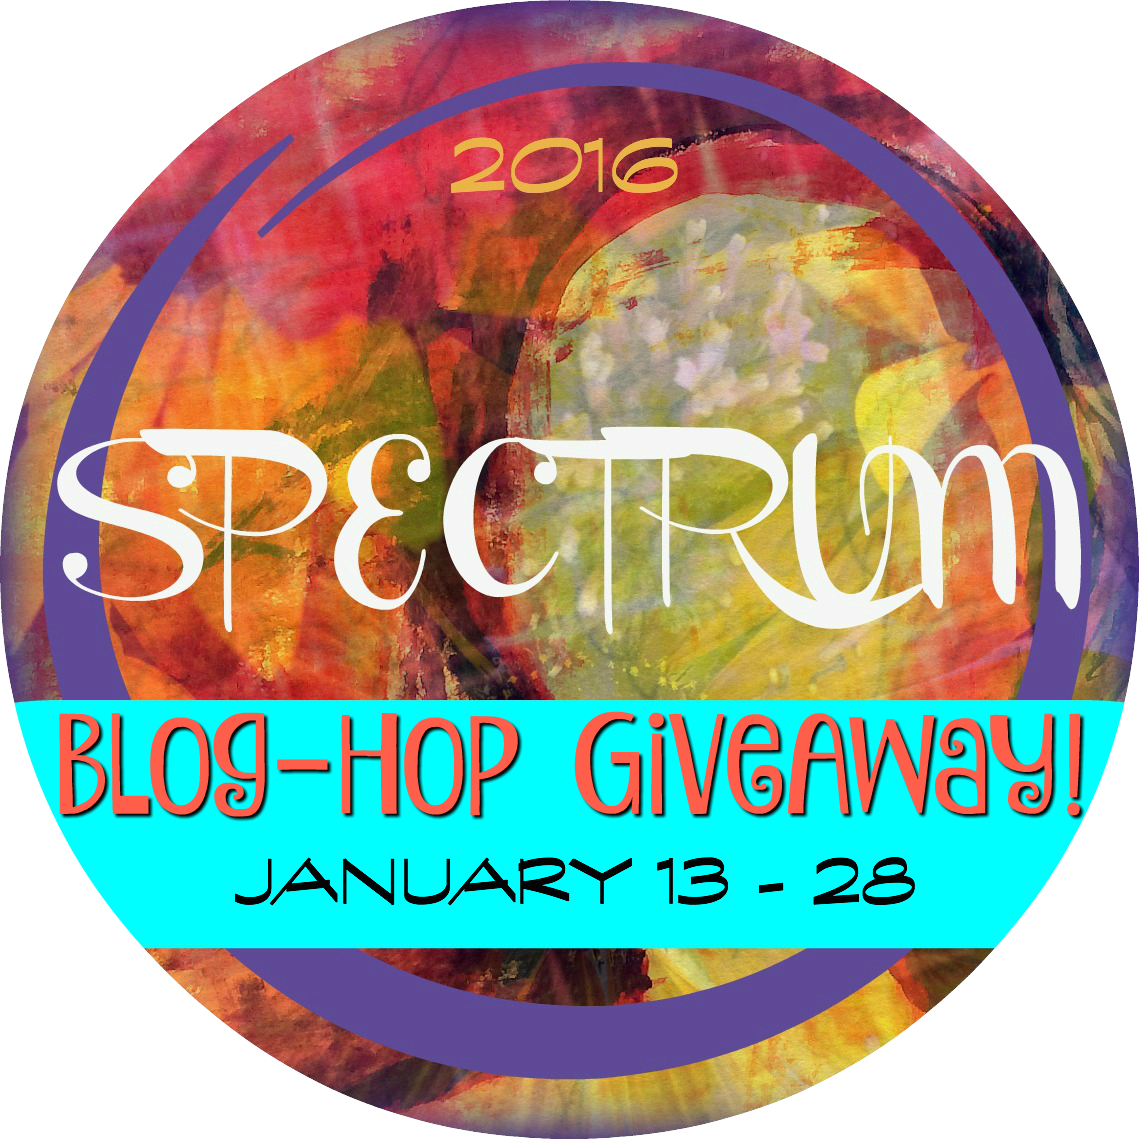 Blog-Hop Giveaway for free passes to Spectrum 2016 Holistic Creative Workshop, join us